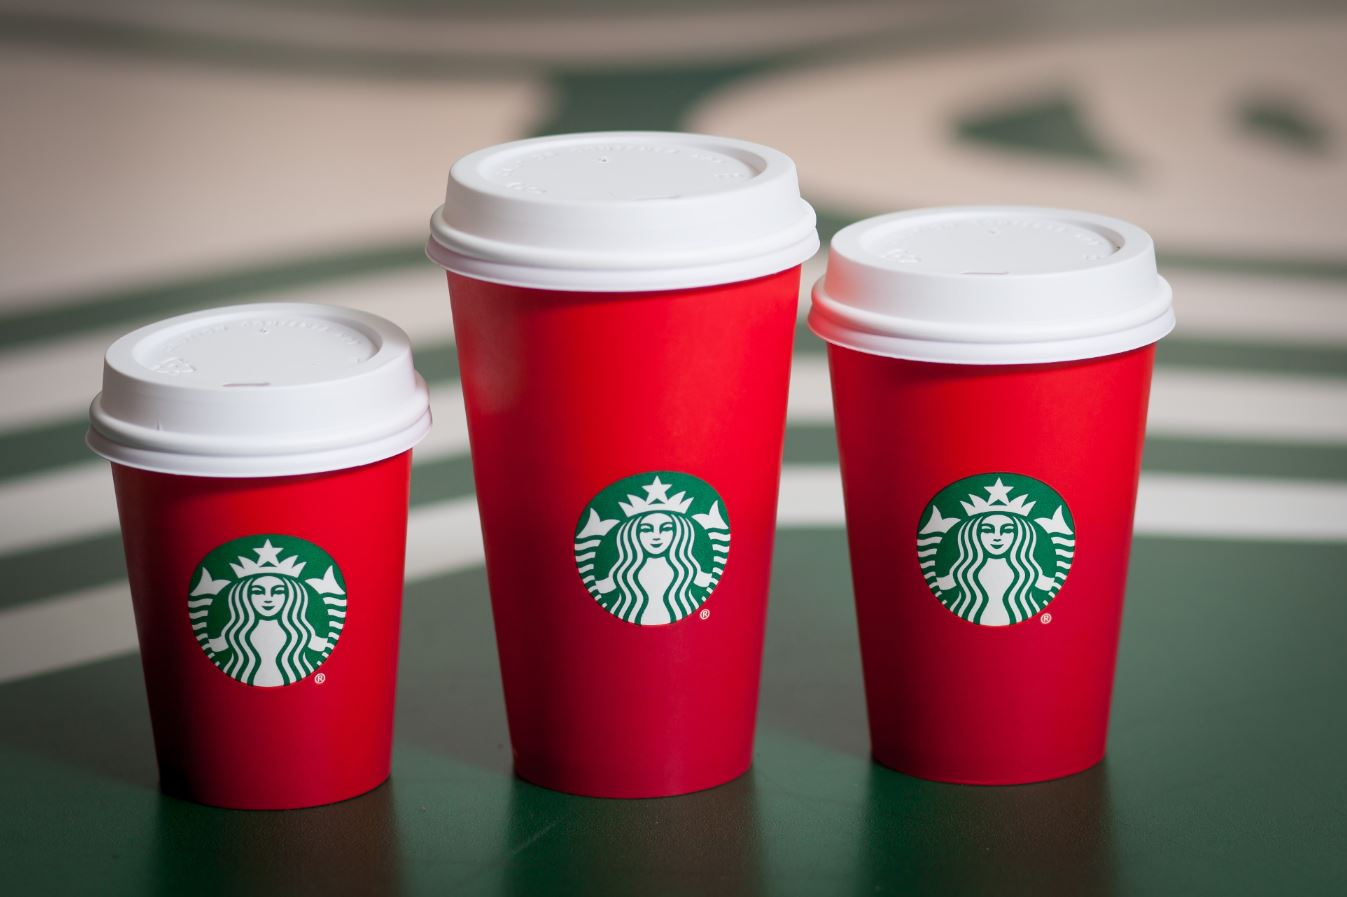 Starbucks Red Cups Are Back; 'Burnt' Film Is a Box Office Flop